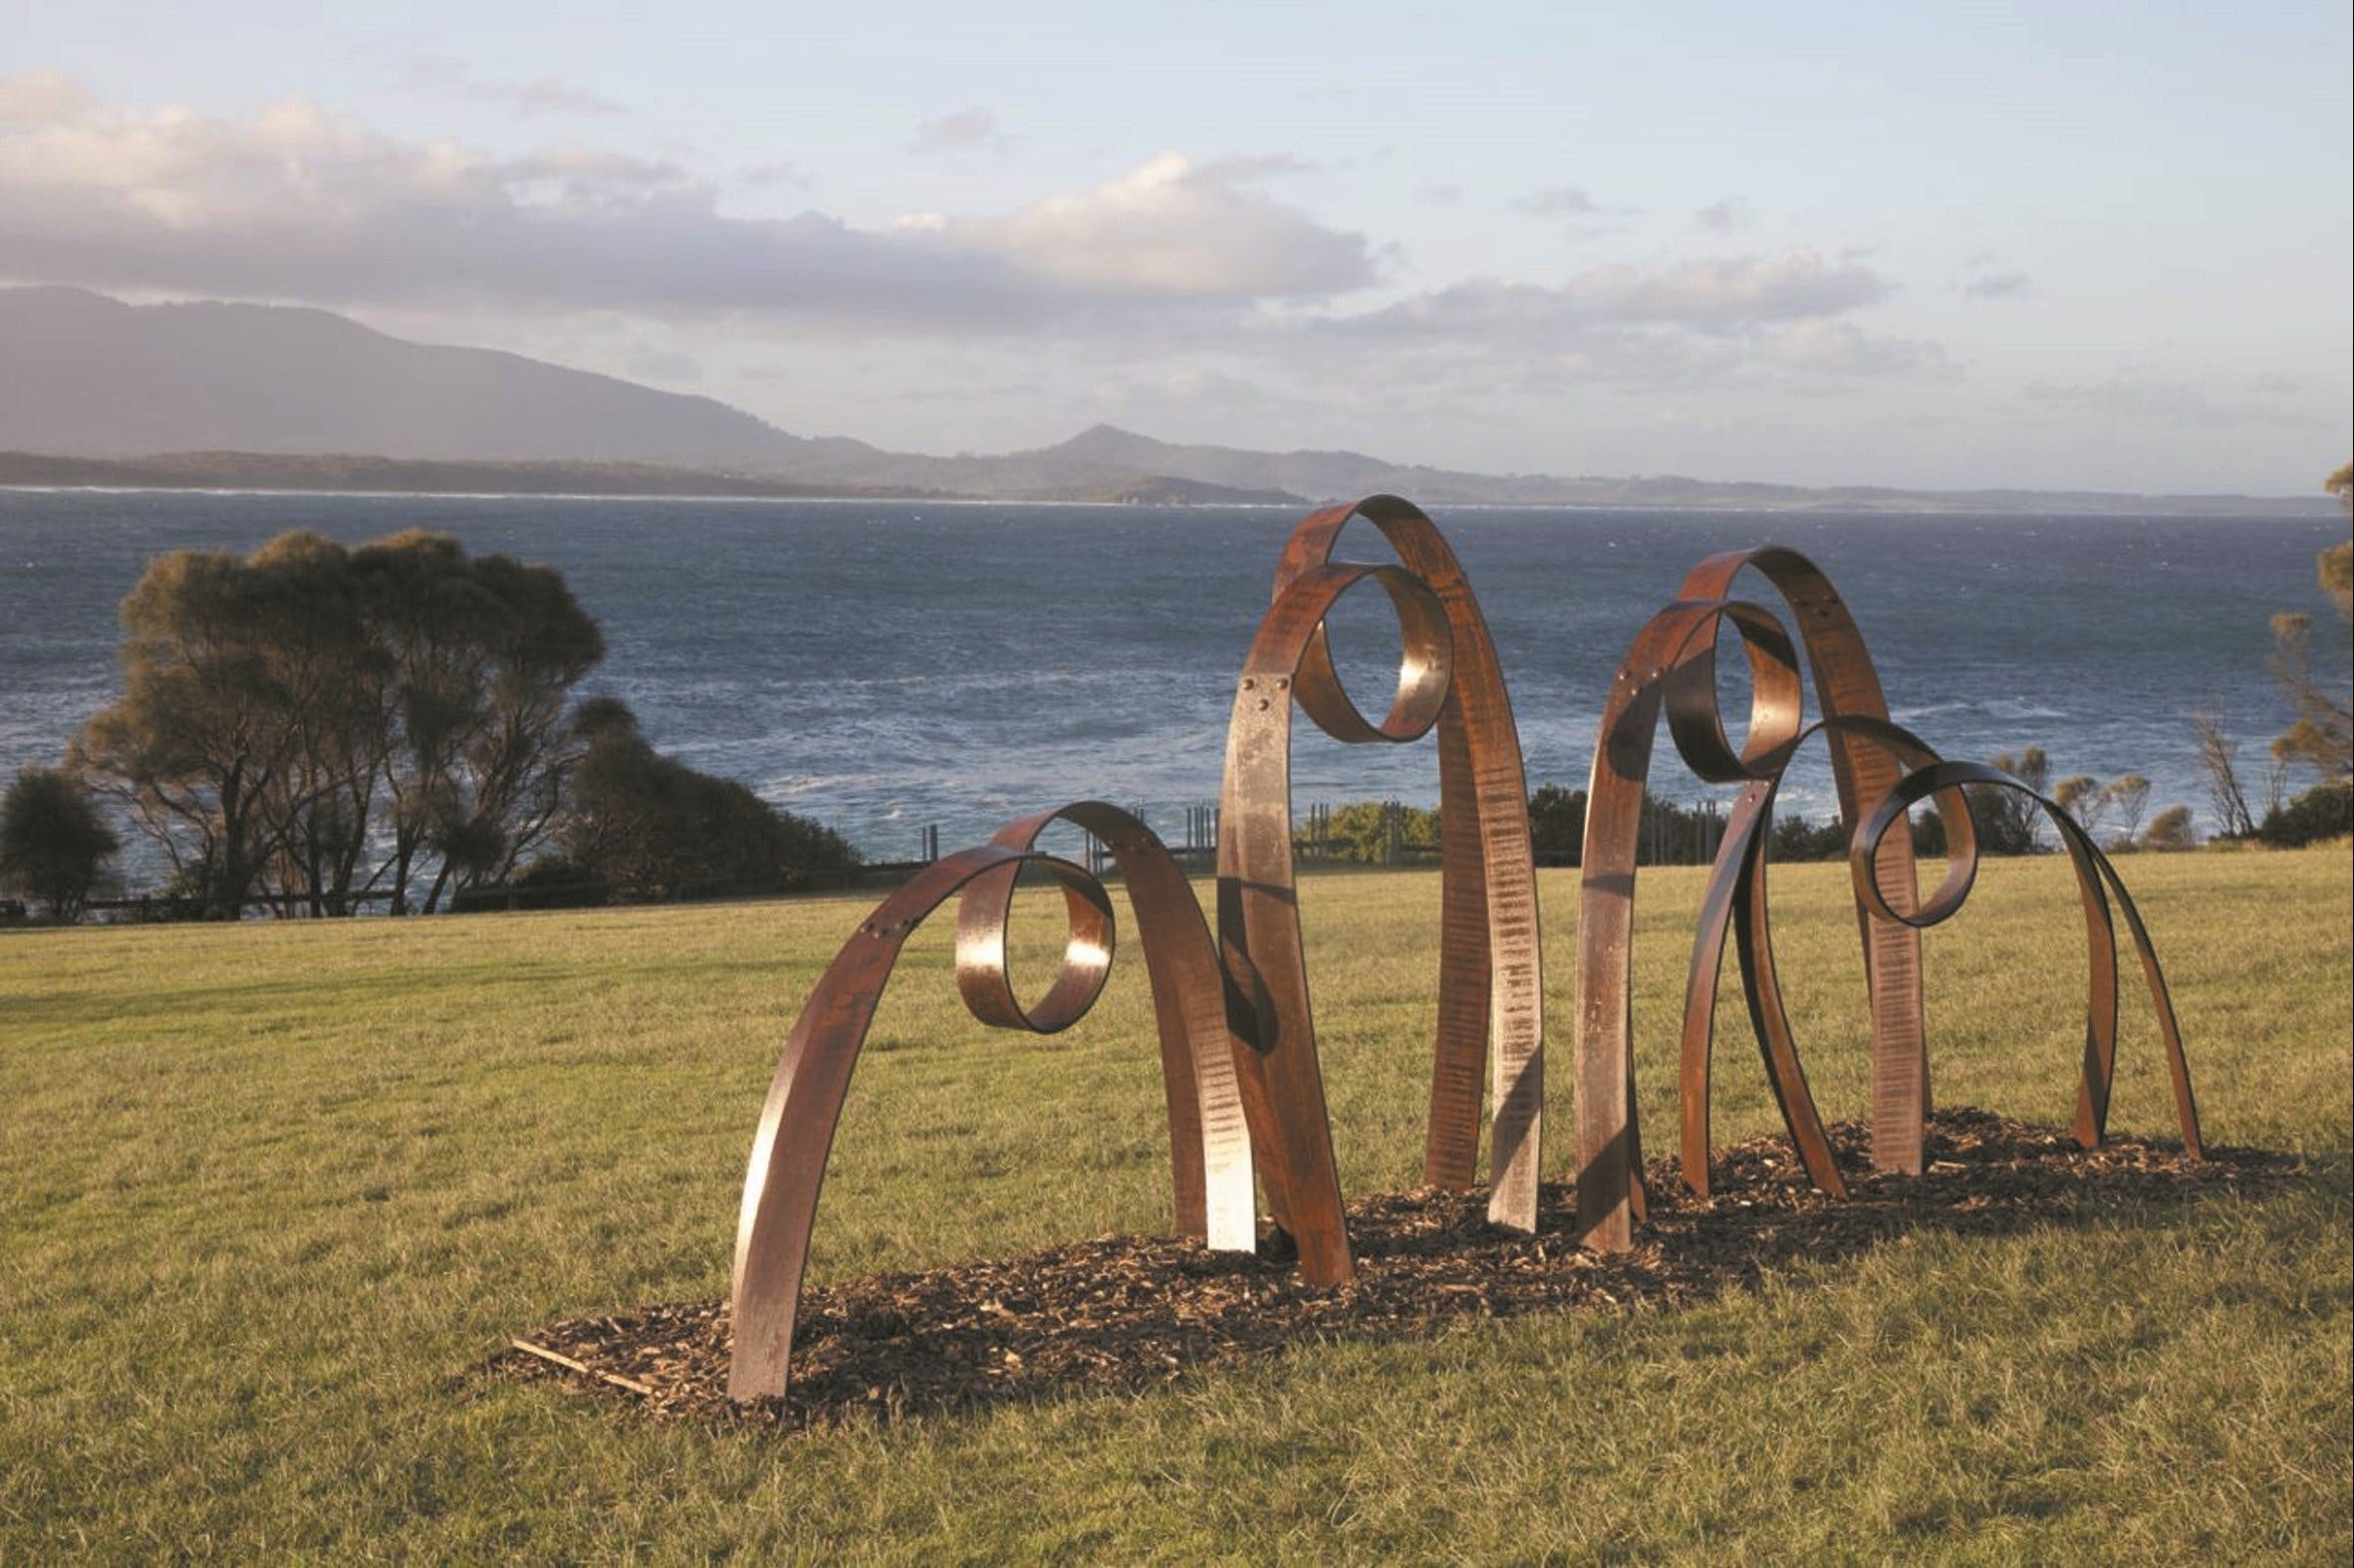 Sculpture Bermagui - Whitsundays Tourism